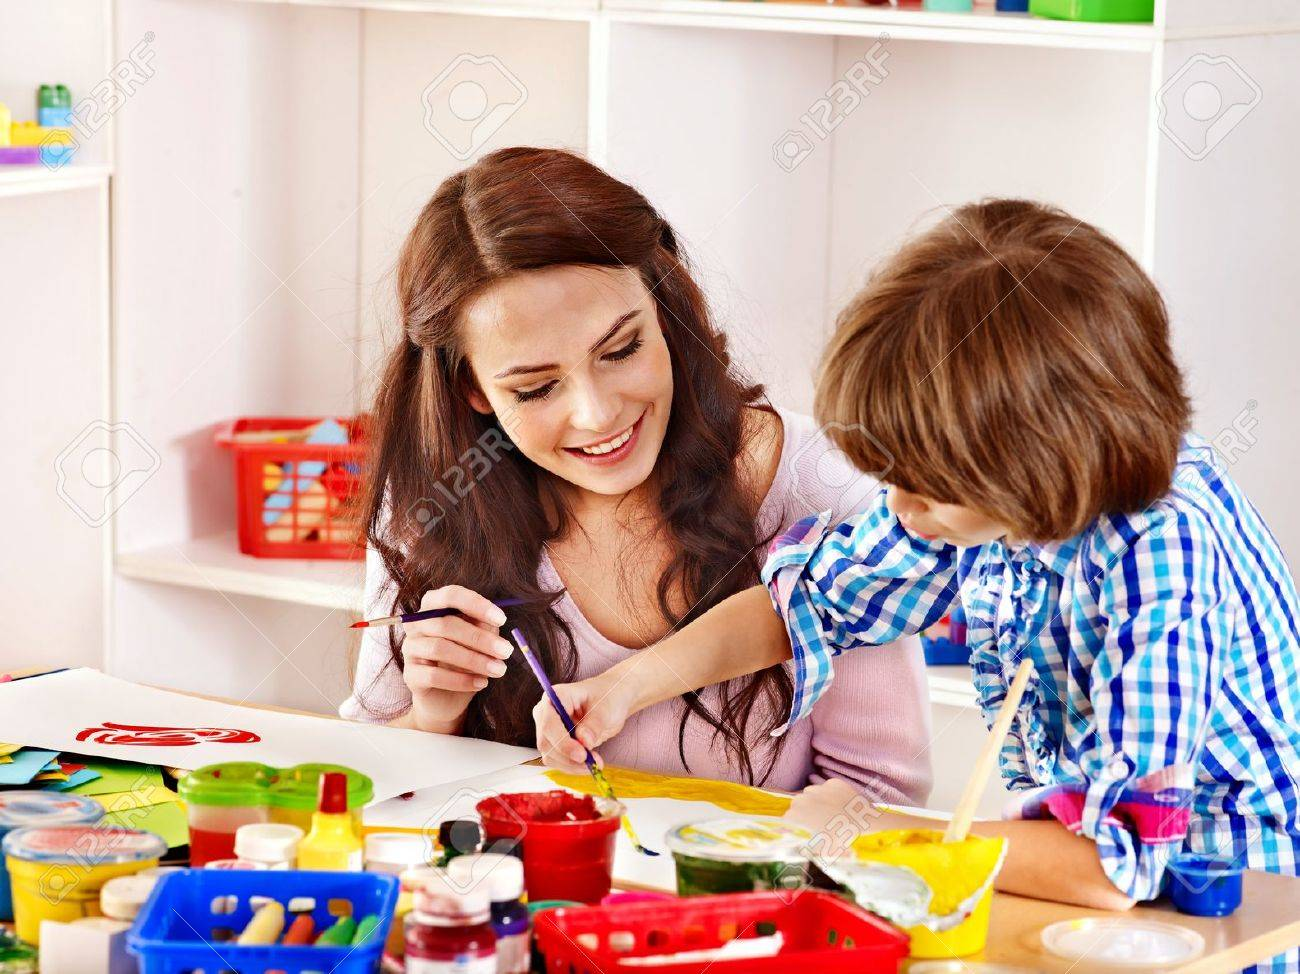 Family with children painting in school. Education. - 21733960